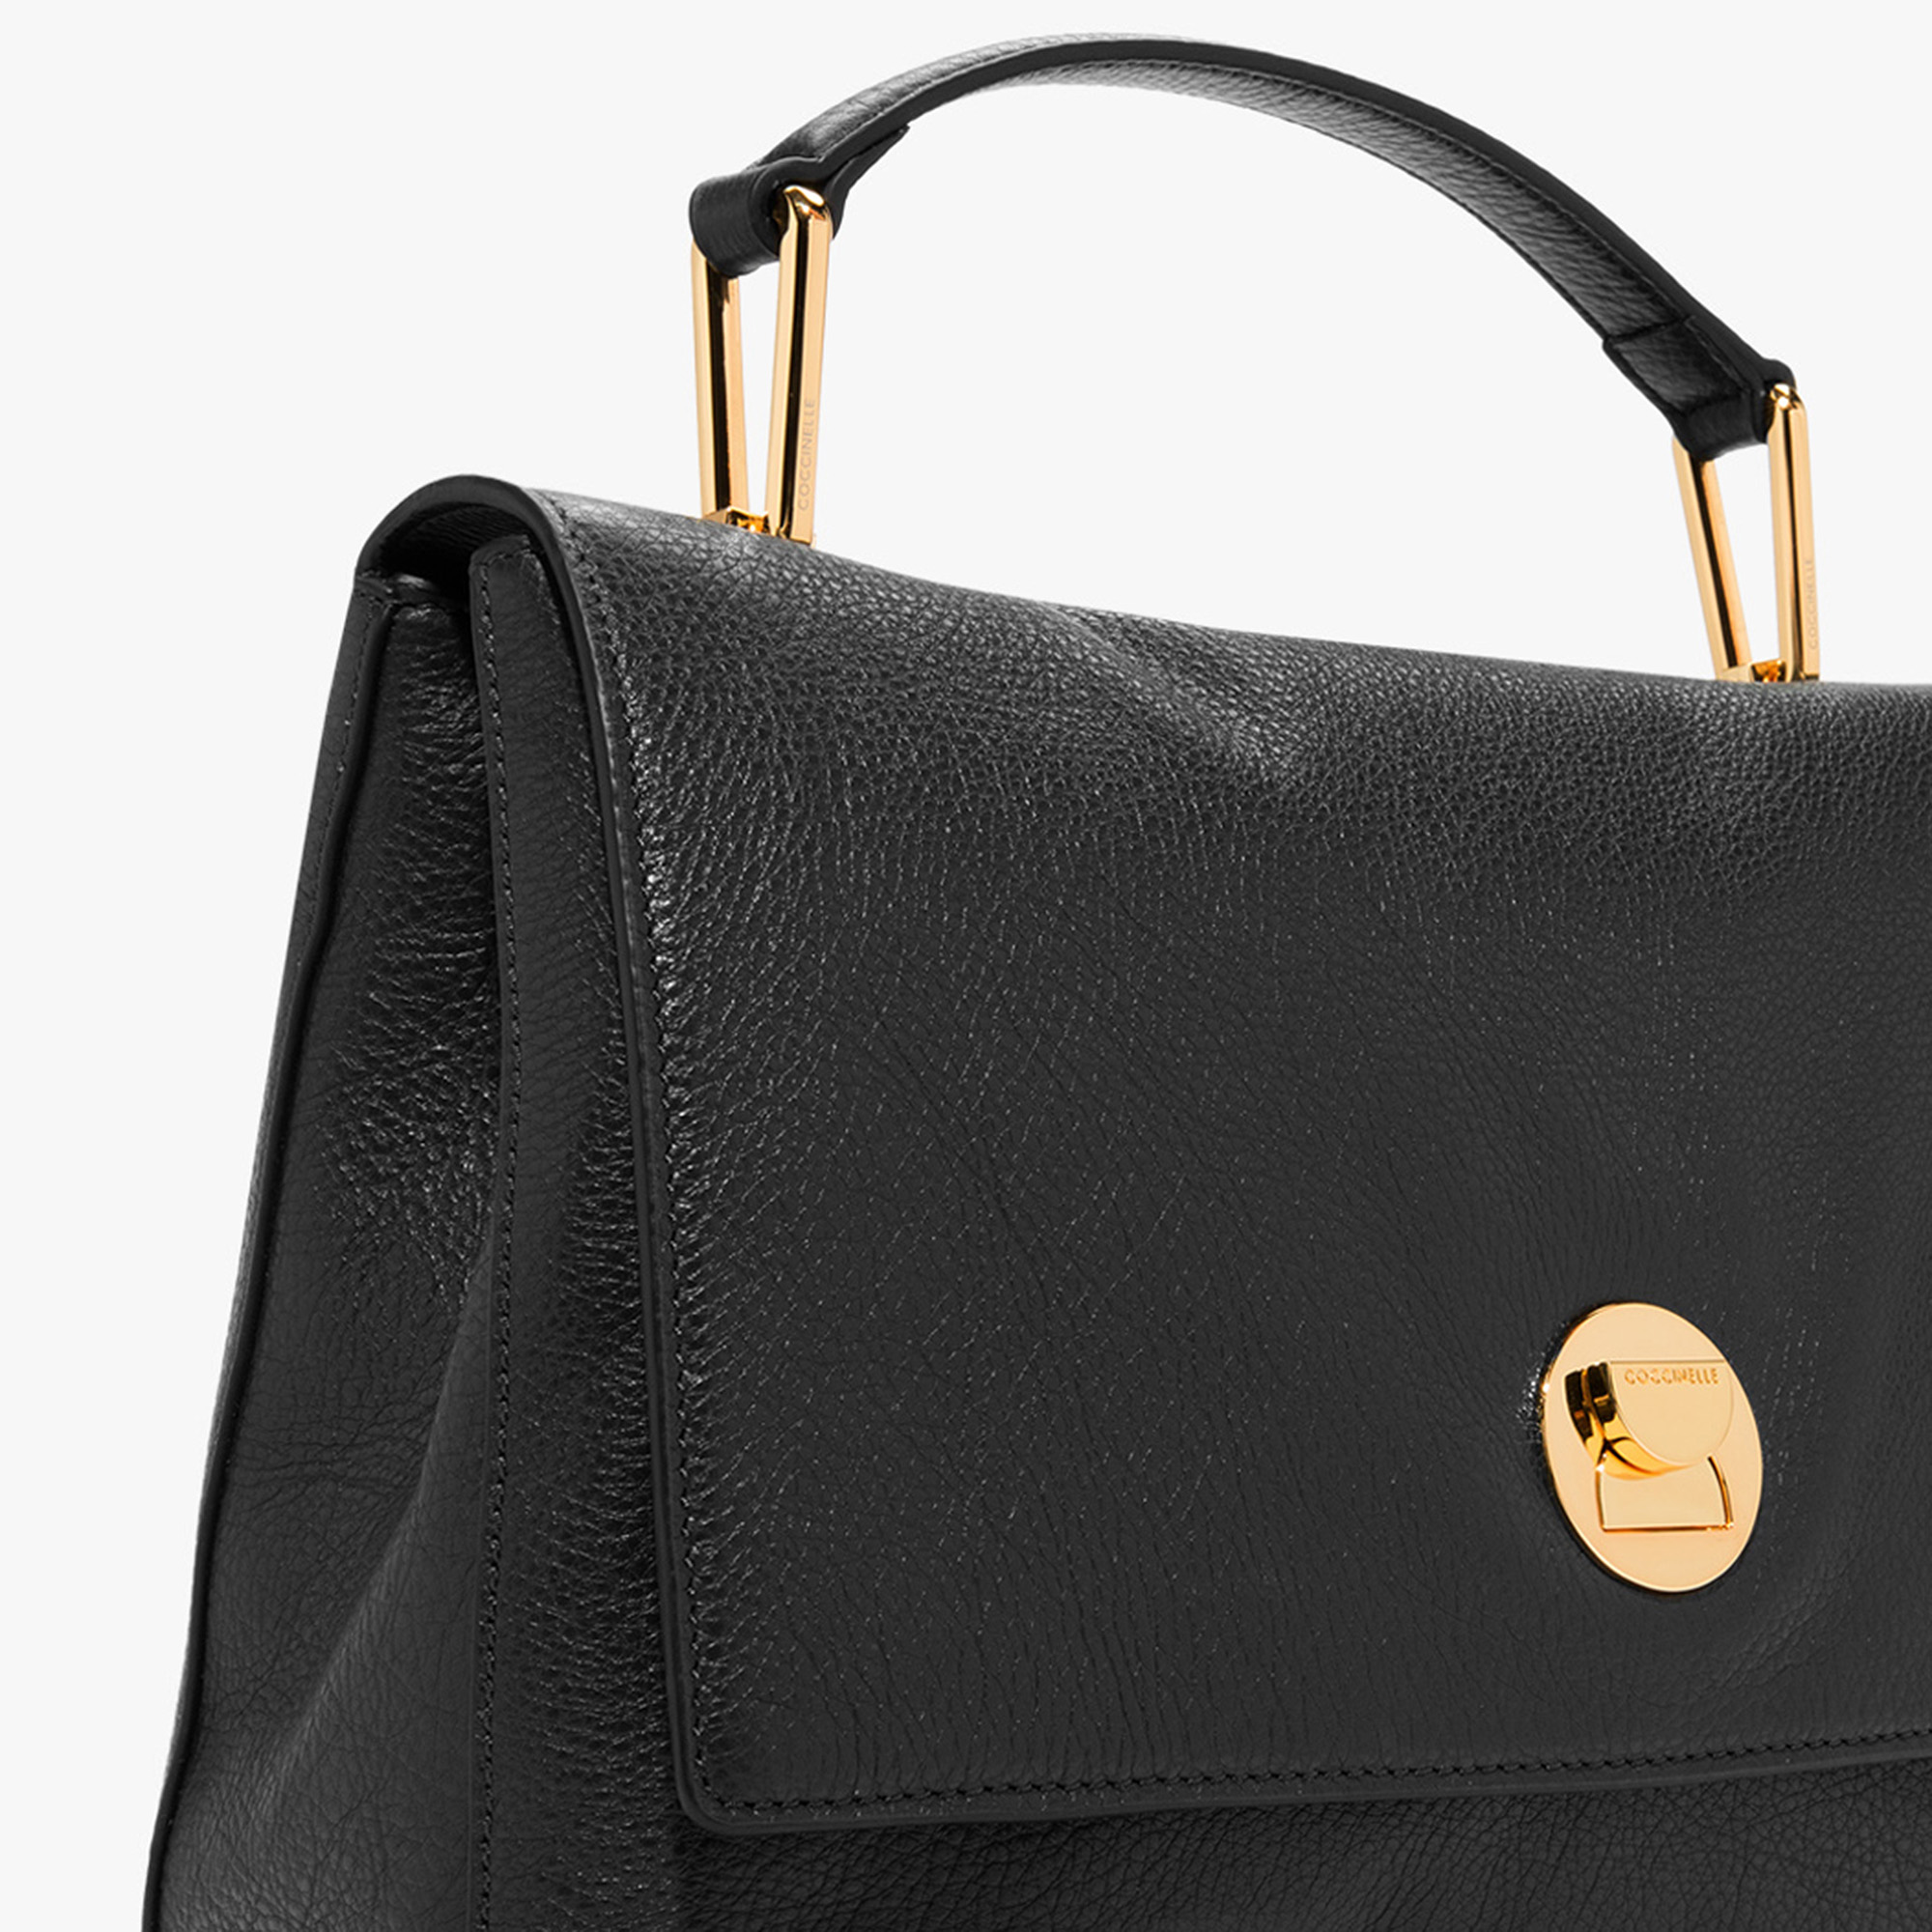 Liya leather handbag